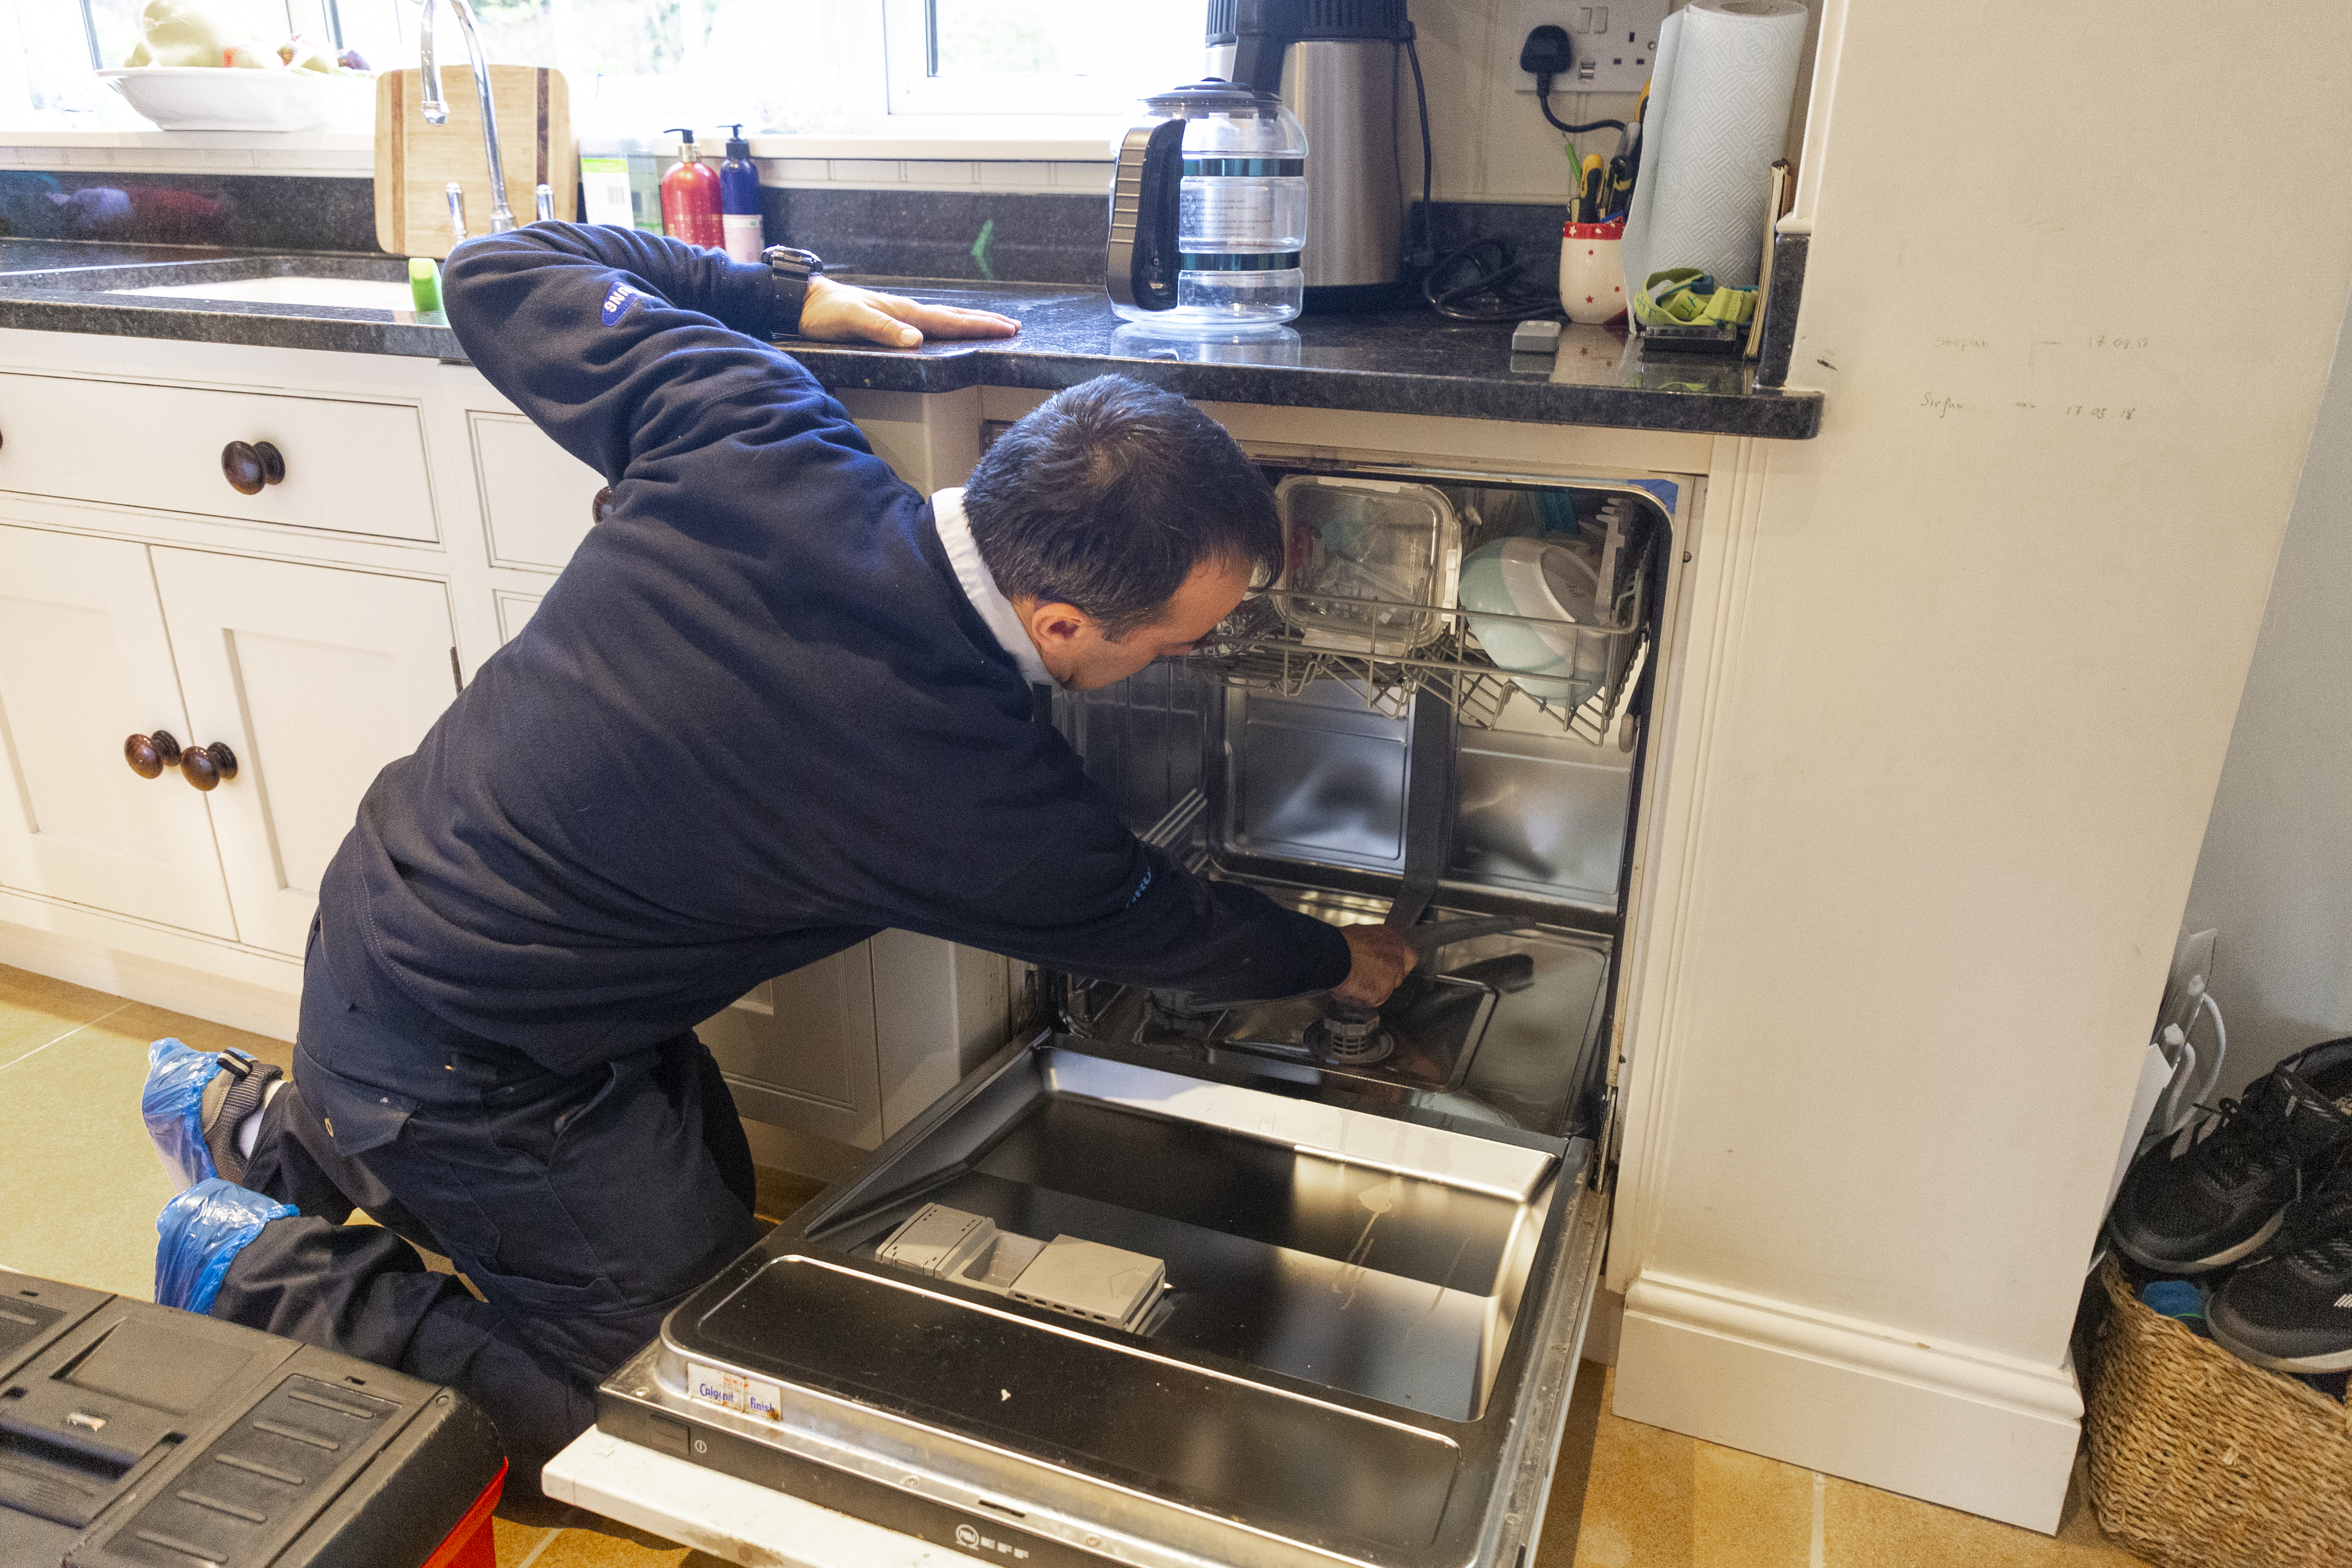 Appliance Repairs in London, No Call Out Charges | Domex Ltd